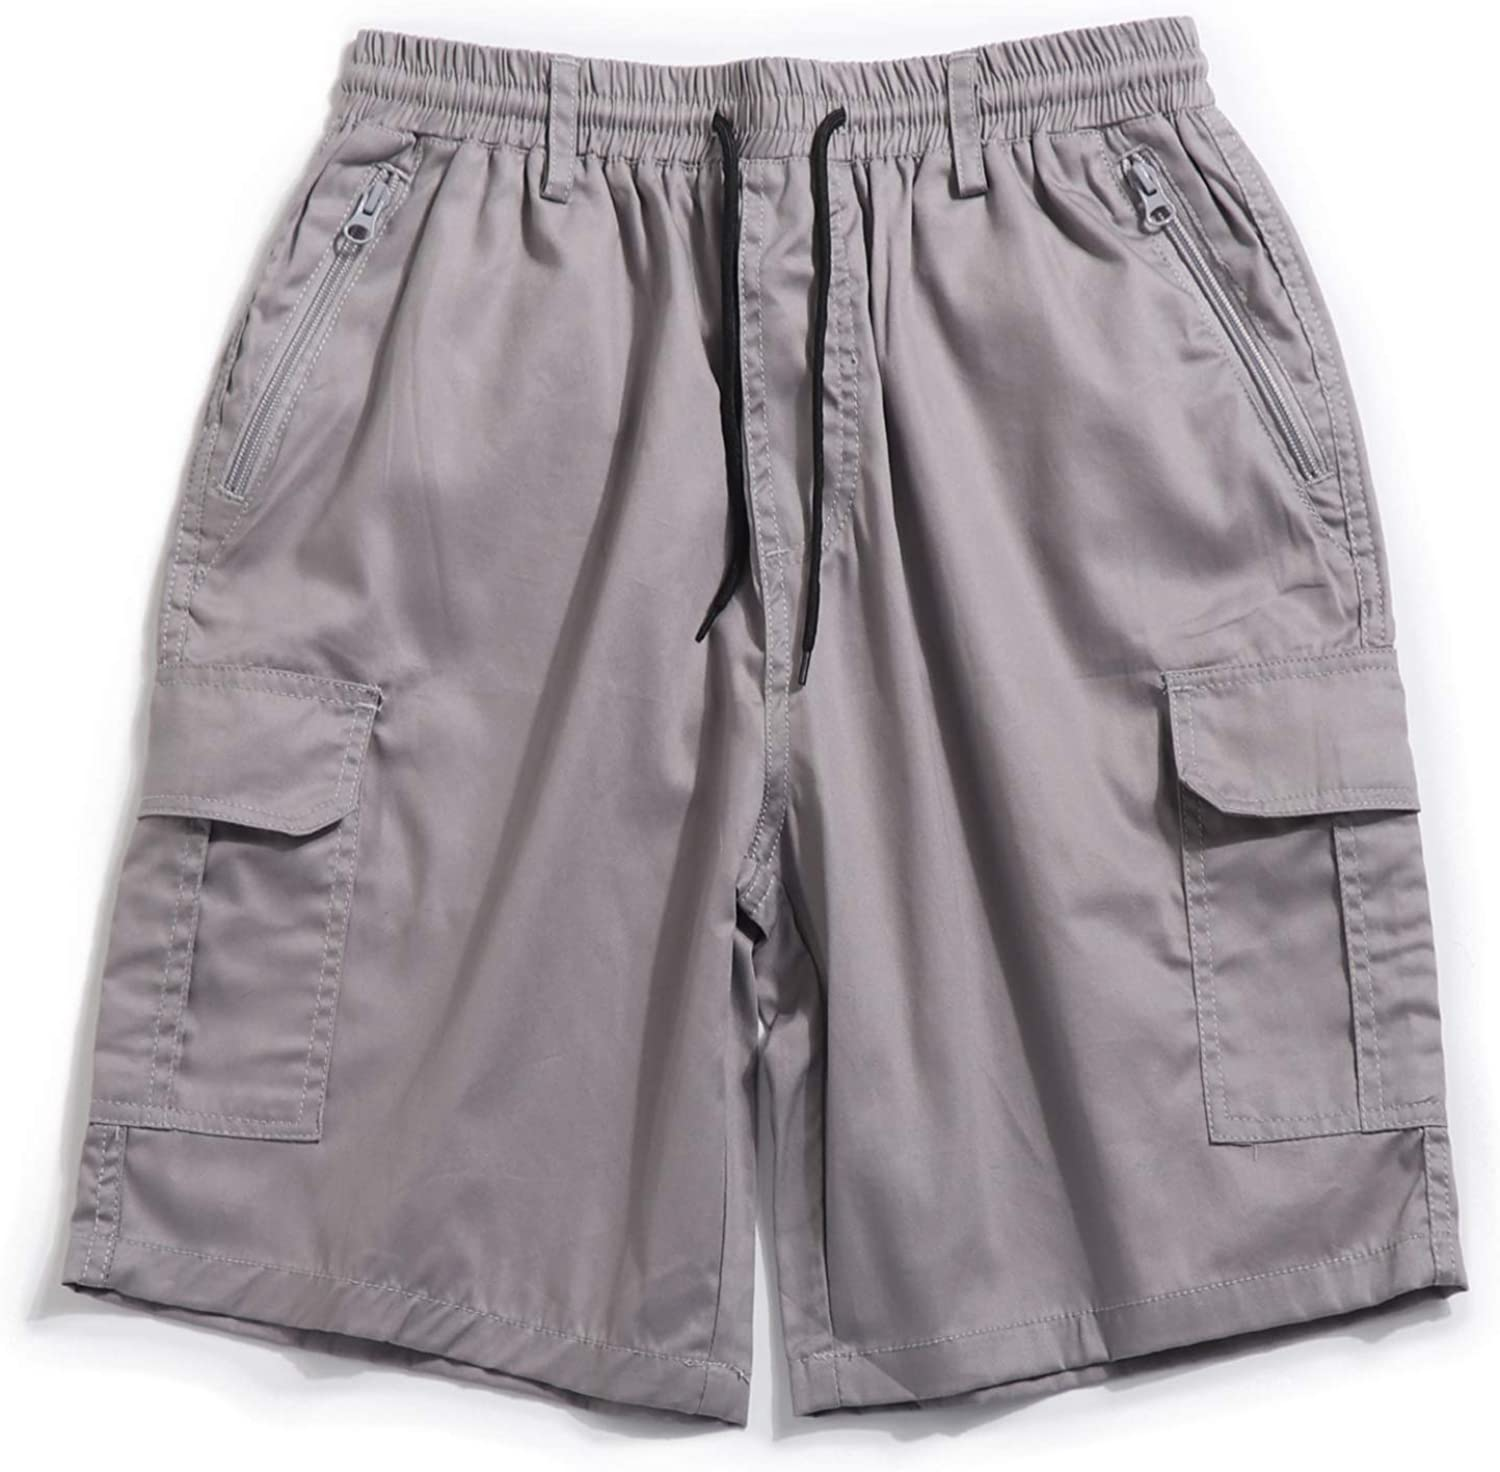 """APTRO Men's Cargo Shorts 7"""" Inseam Stretch Cotton Elastic Waistband Relax Fit Casual Outdoor Shorts"""